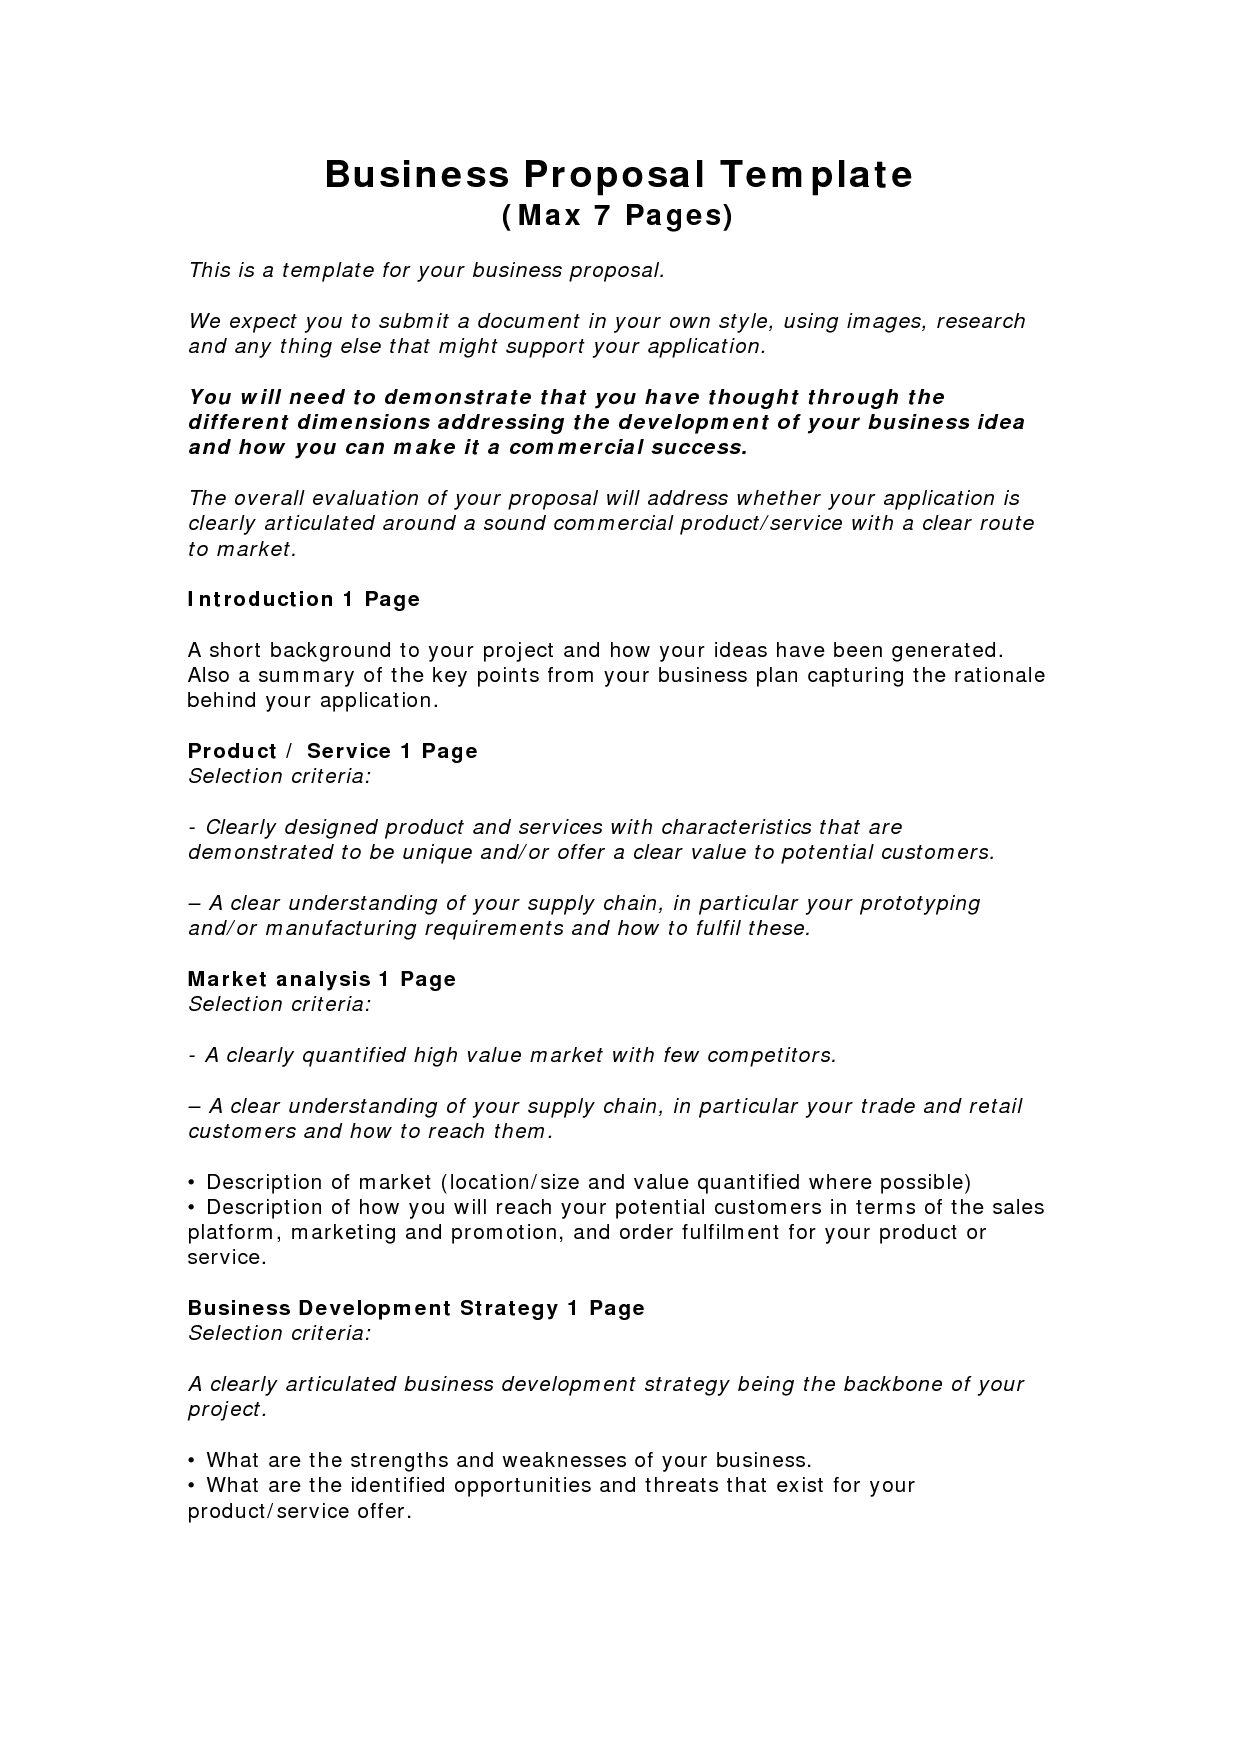 Awesome Business Proposal Templates Examples | Business Proposal Template (Max 7  Pages)   PDF